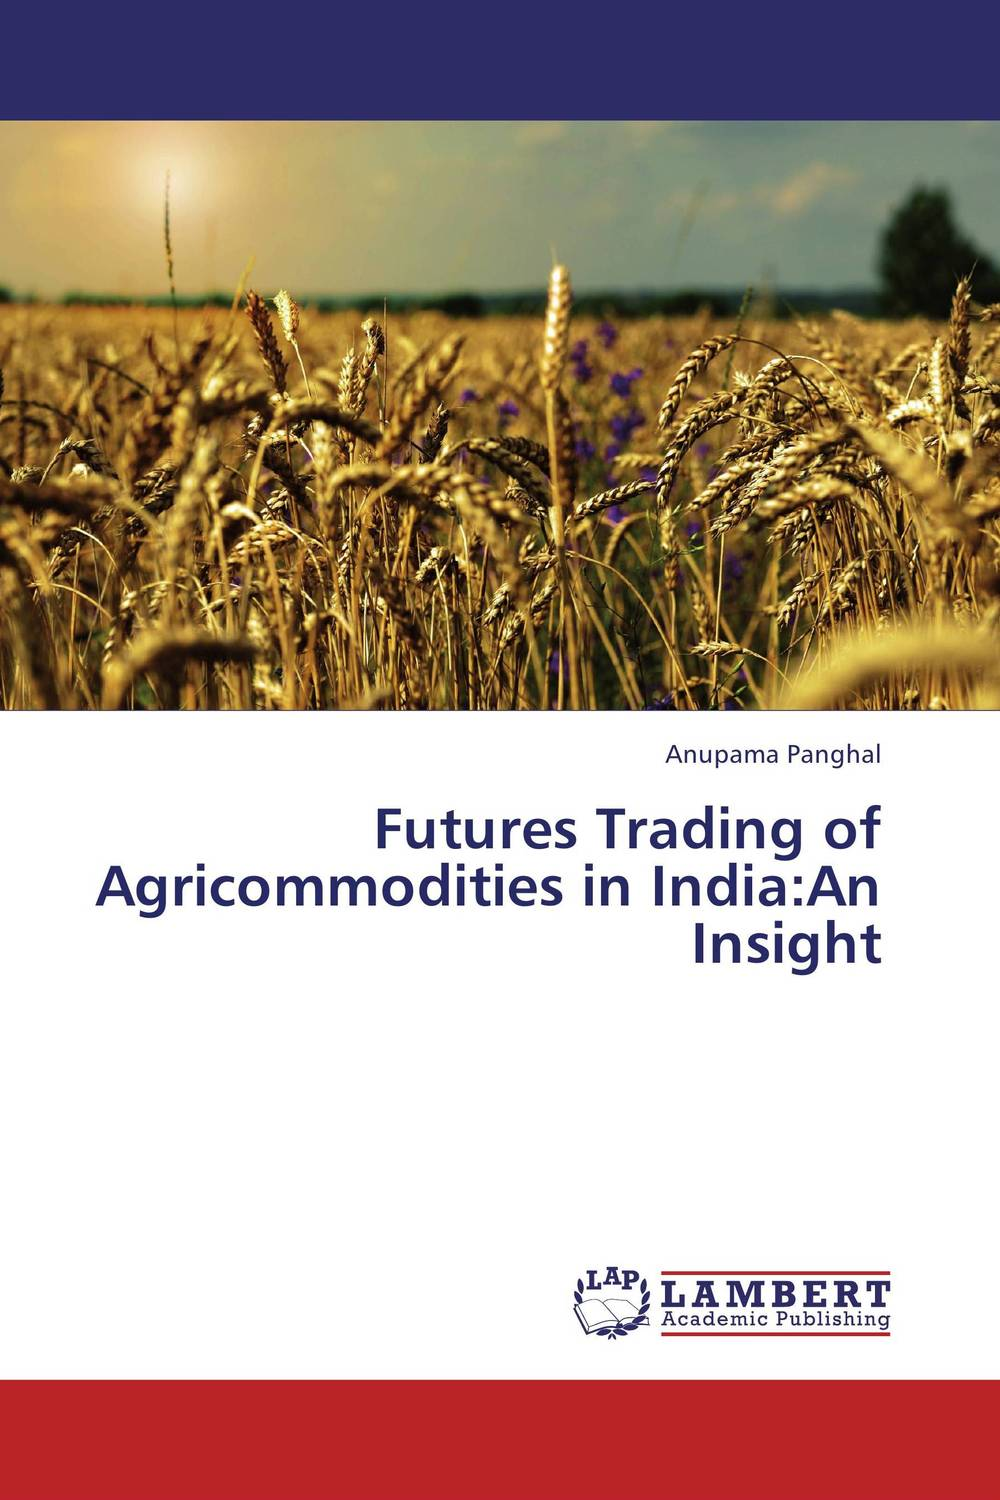 Futures Trading of Agricommodities in India:An Insight the role of evaluation as a mechanism for advancing principal practice